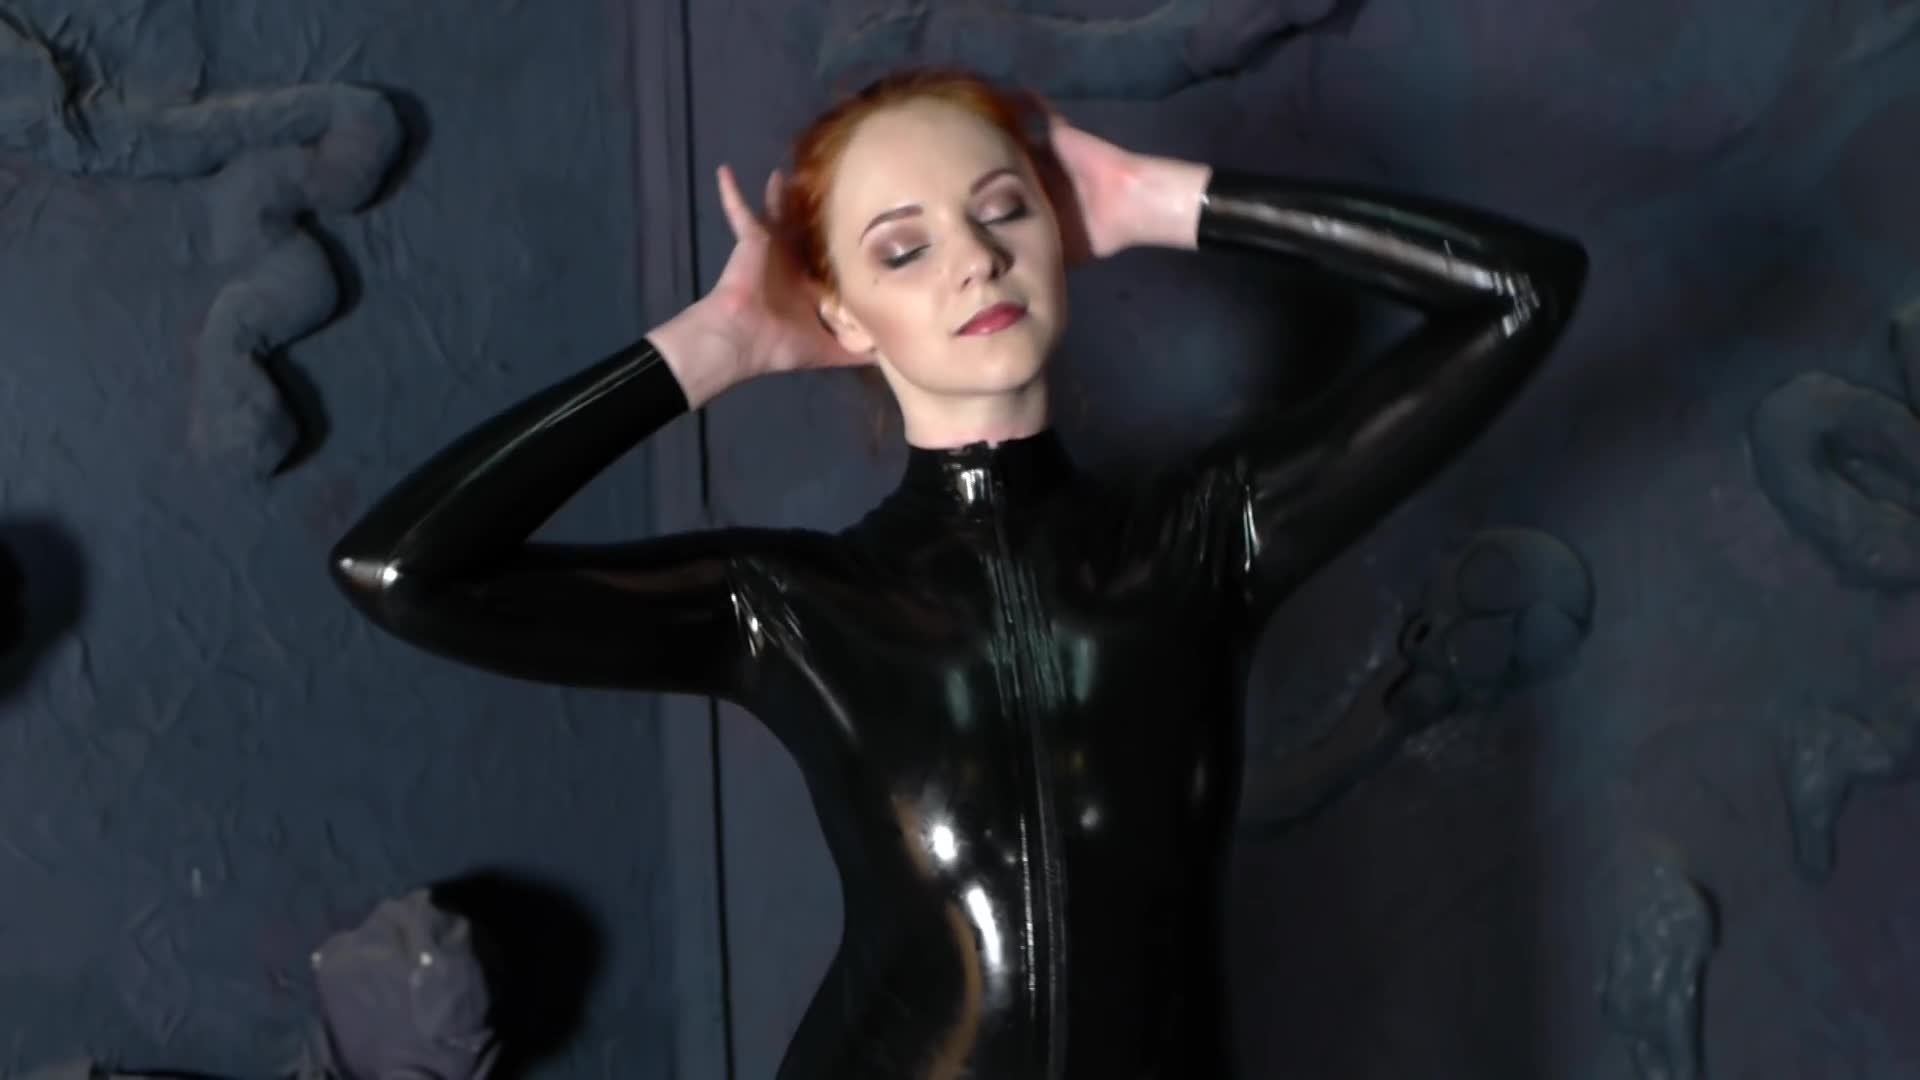 Latexmodel in a black Latex Catsuit